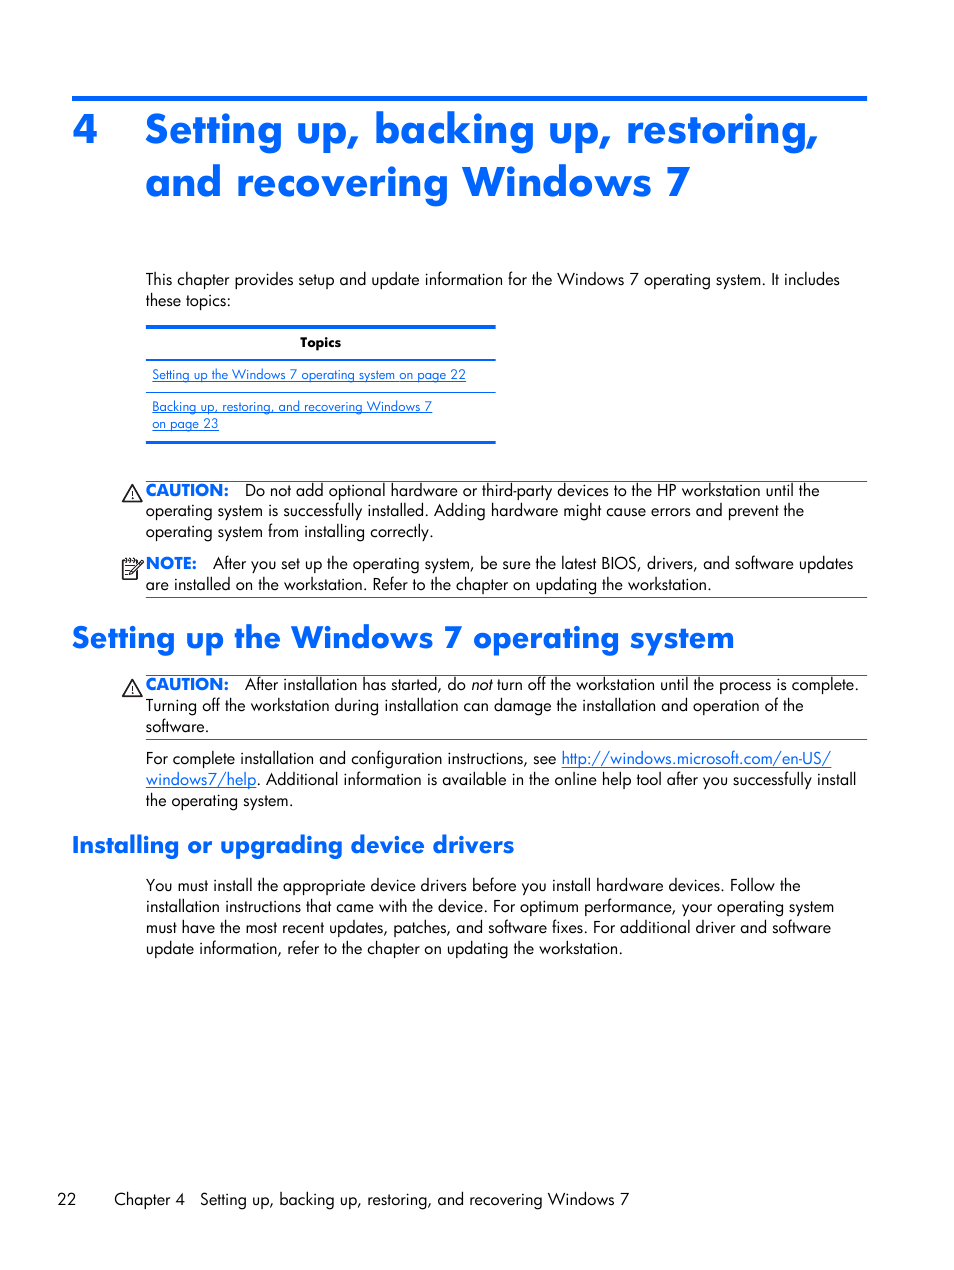 Setting up the windows 7 operating system, Installing or